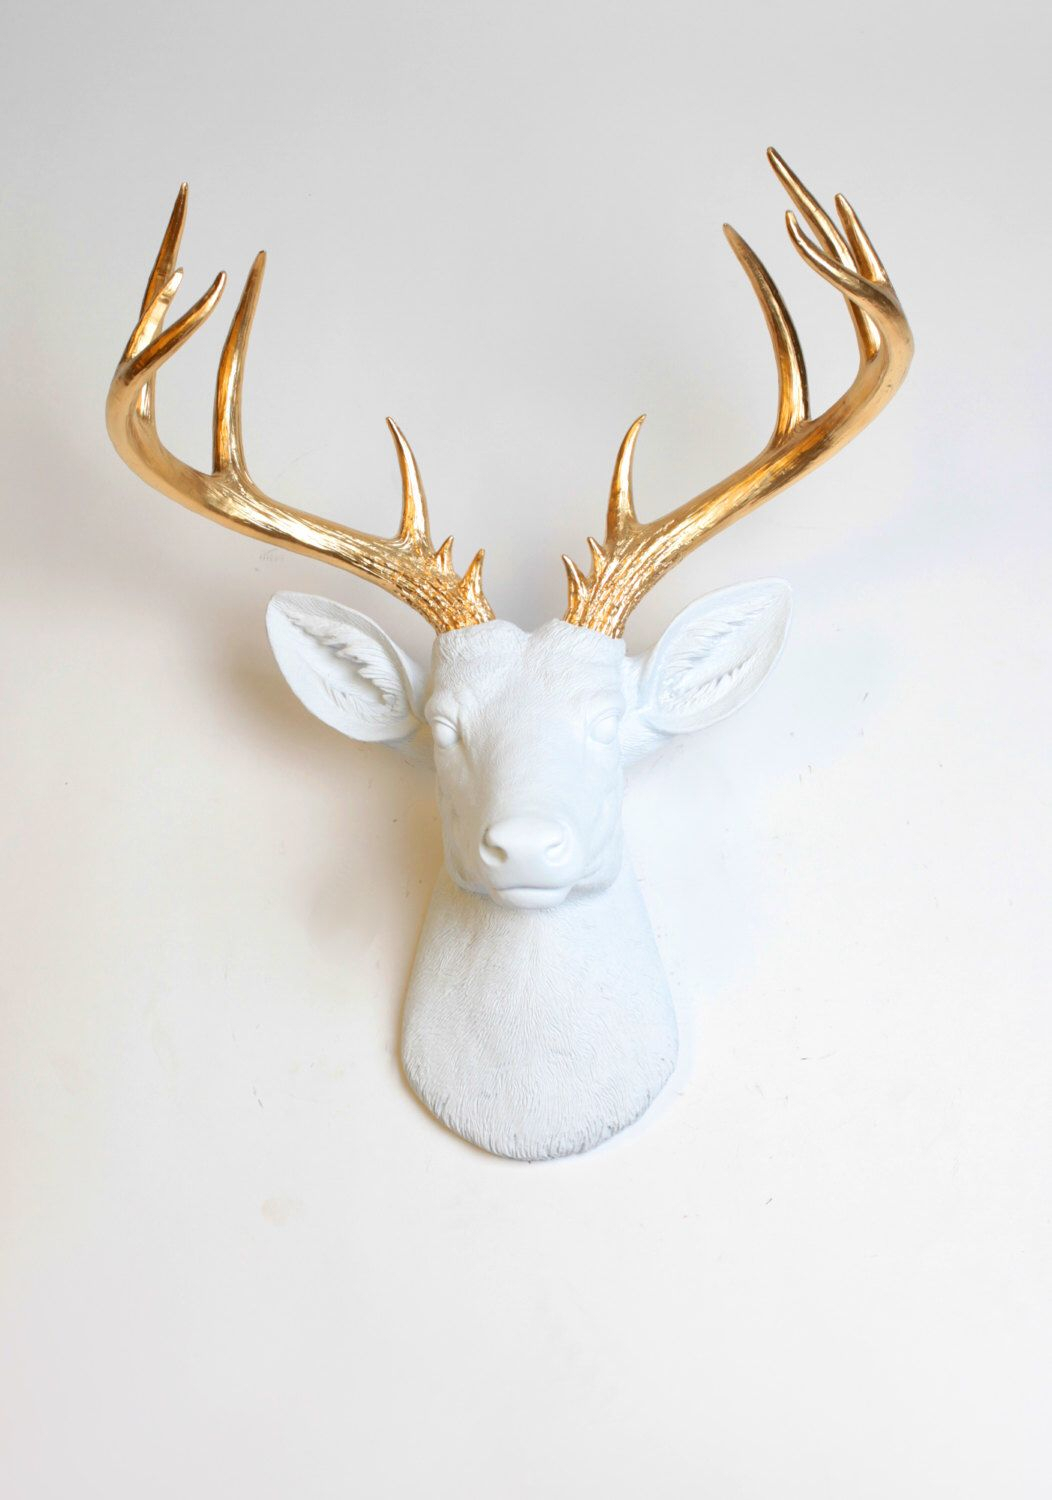 Popular Large Deer Head Faux Taxidermy Wall Decor Pertaining To Deer Head Wall Mount Decor – The Xl Alfred – White And Gold Deer (View 18 of 20)